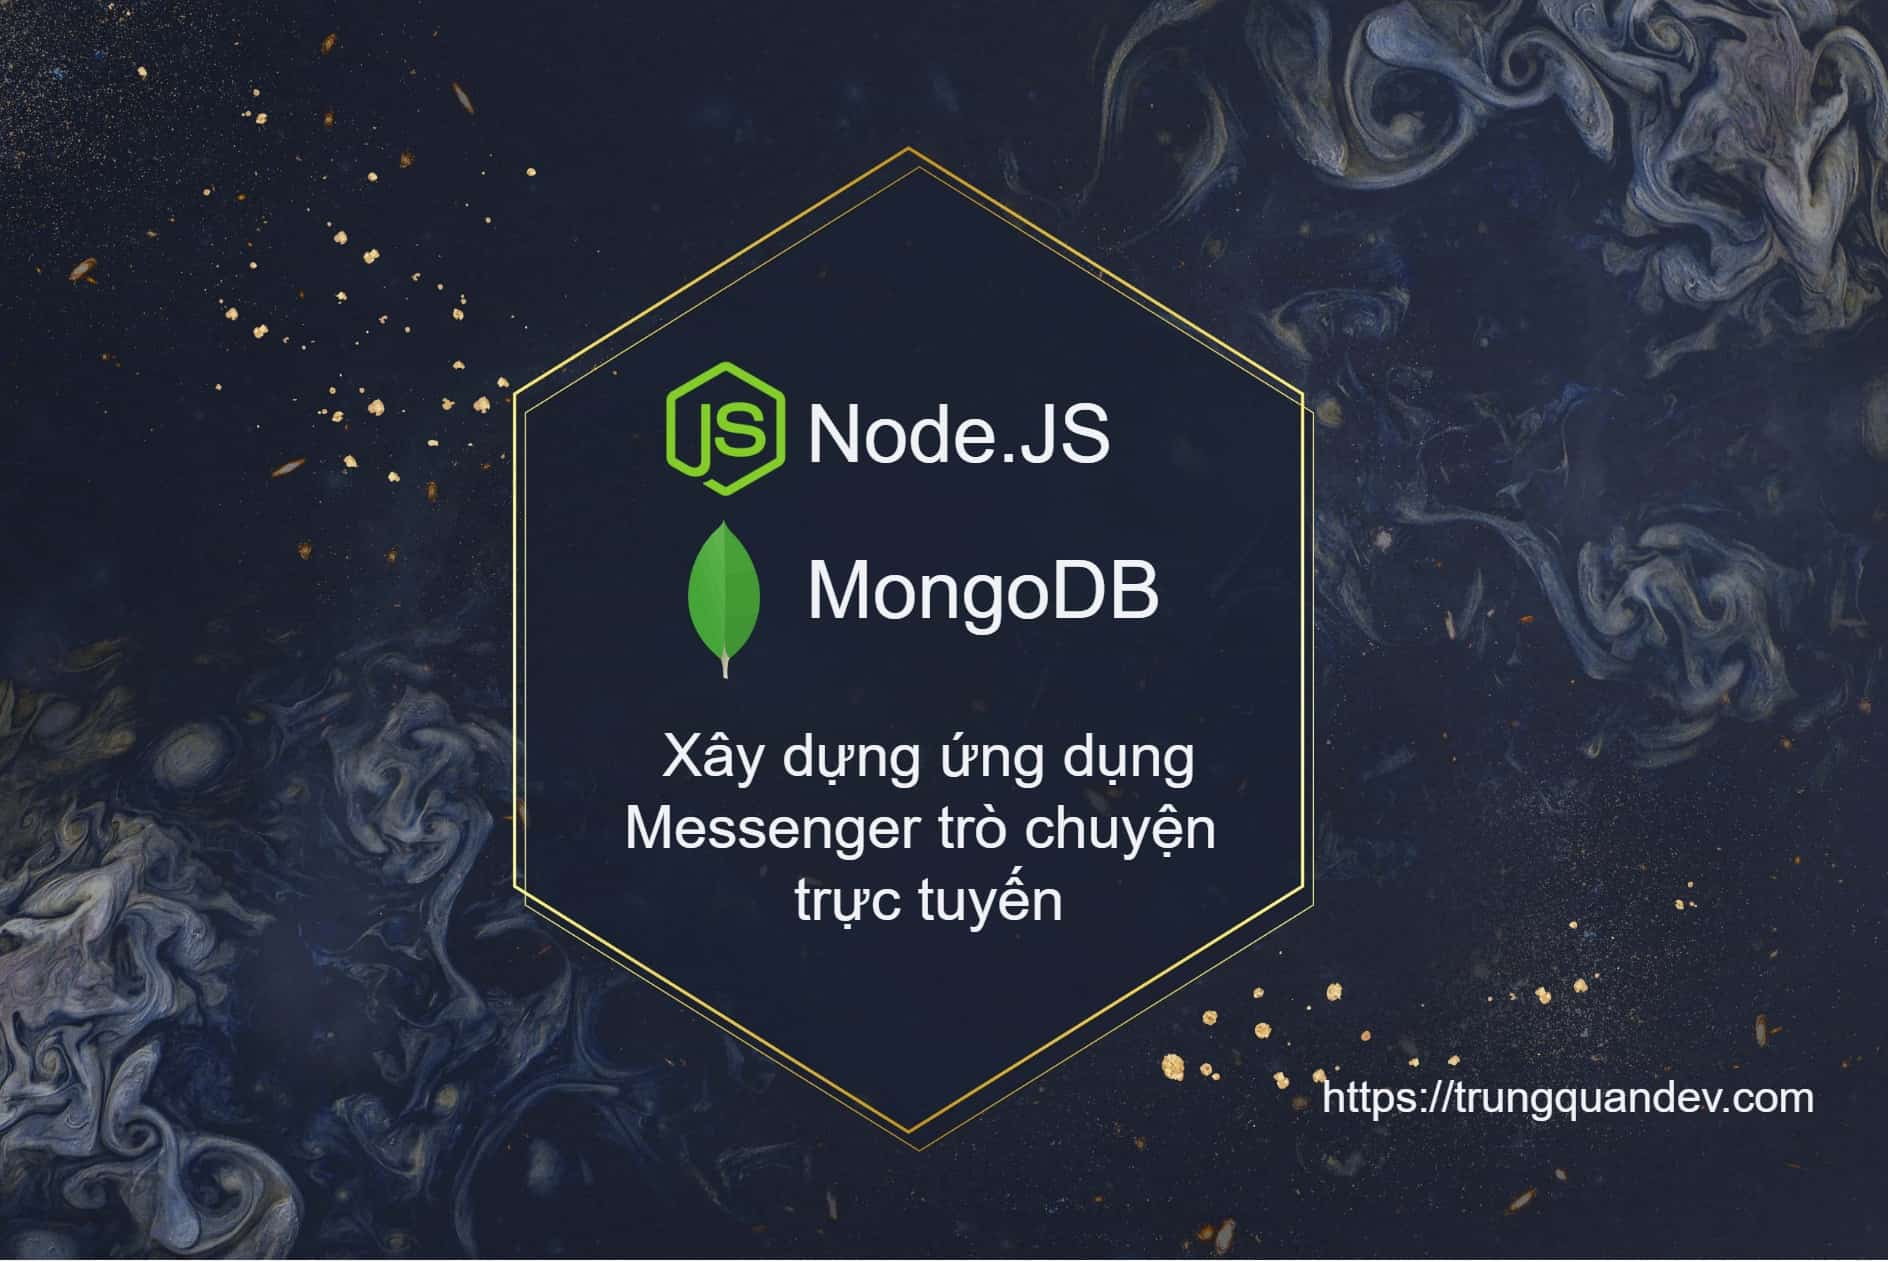 nodejs-mongodb-messenger-real-time-trungquandev